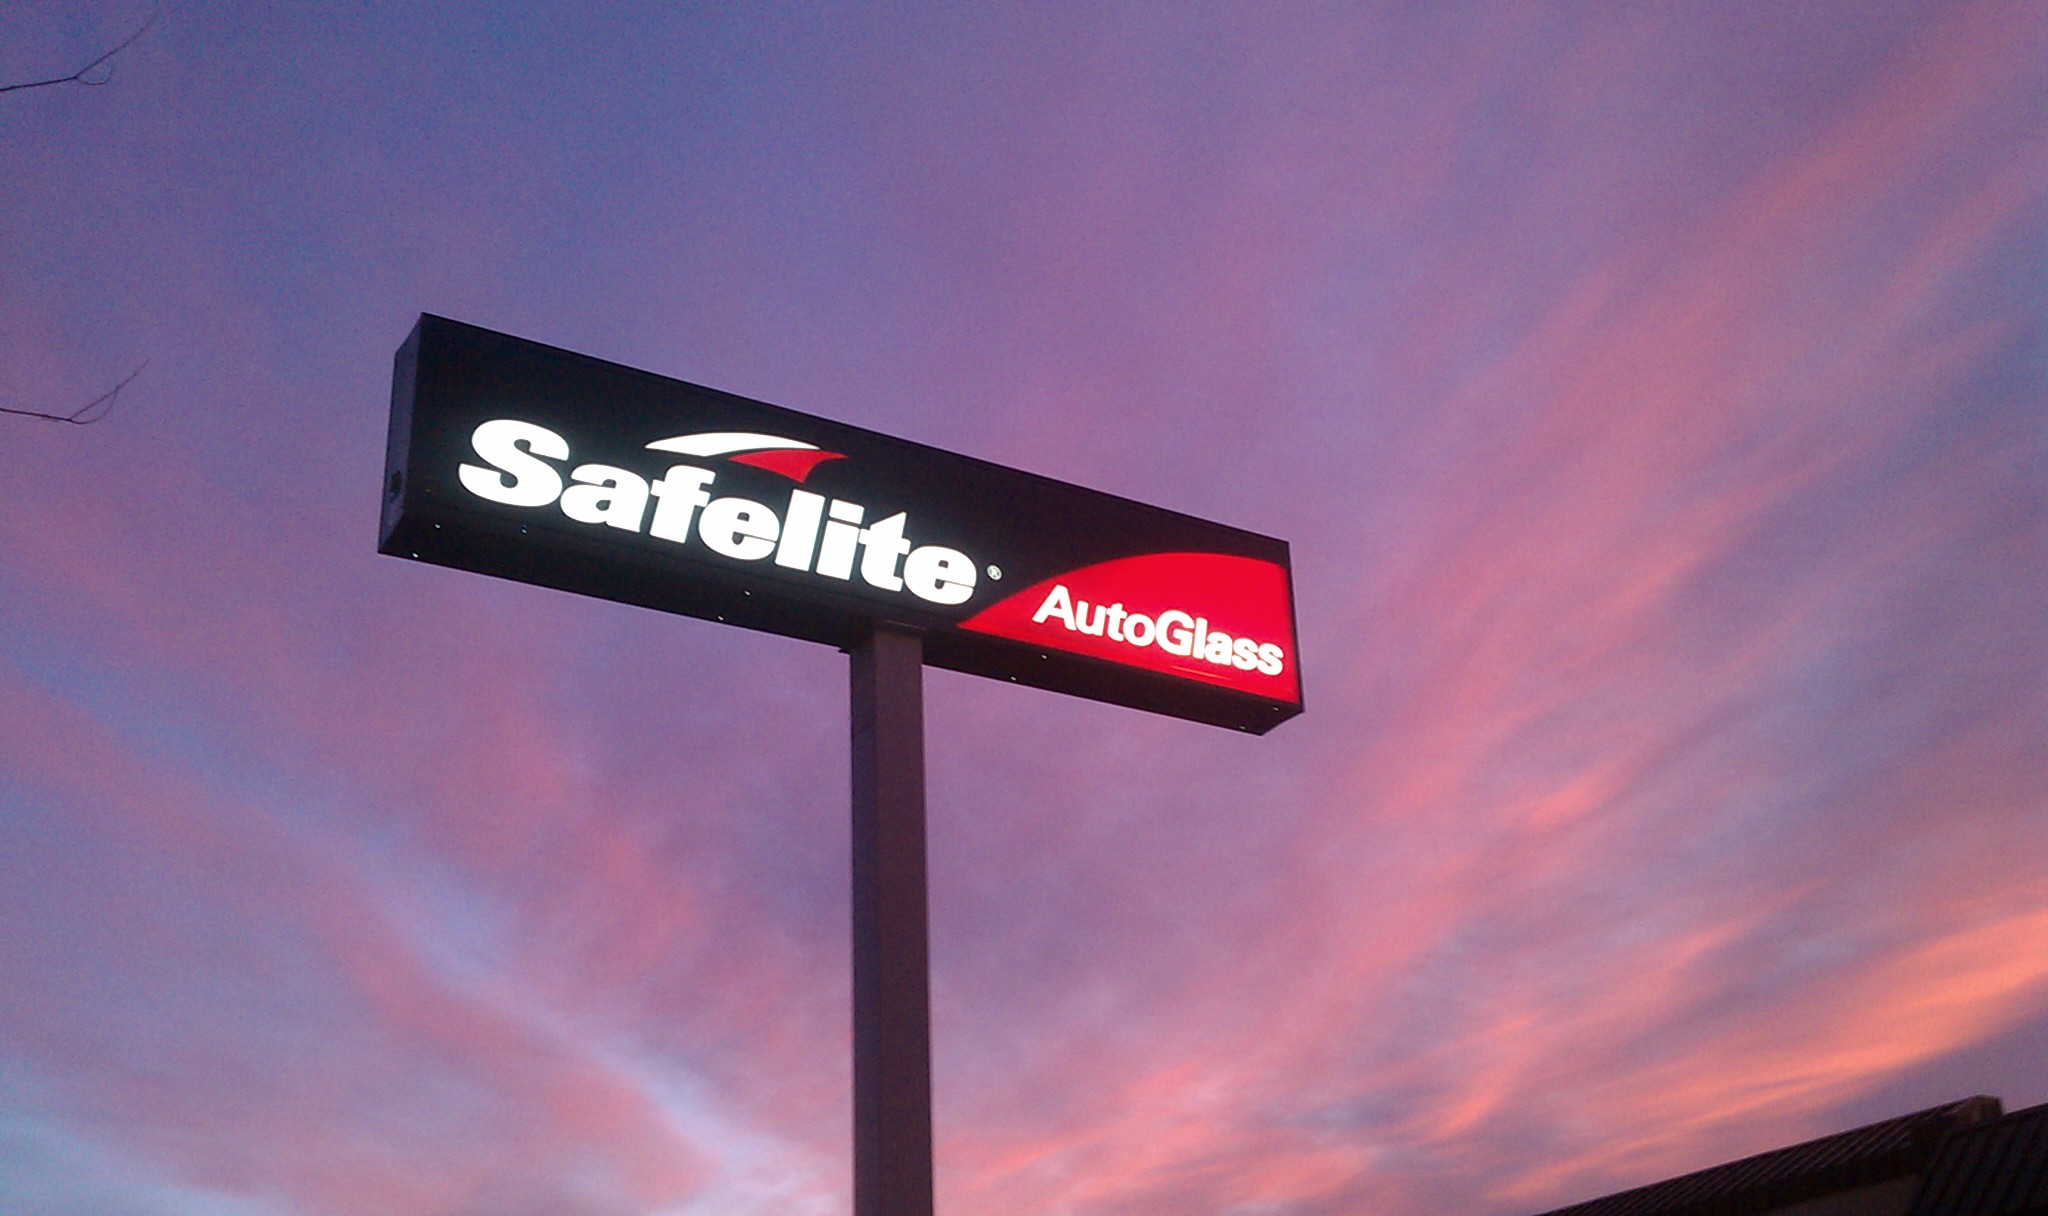 Safelite AutoGlass Central Ave Union City CA Auto Glass